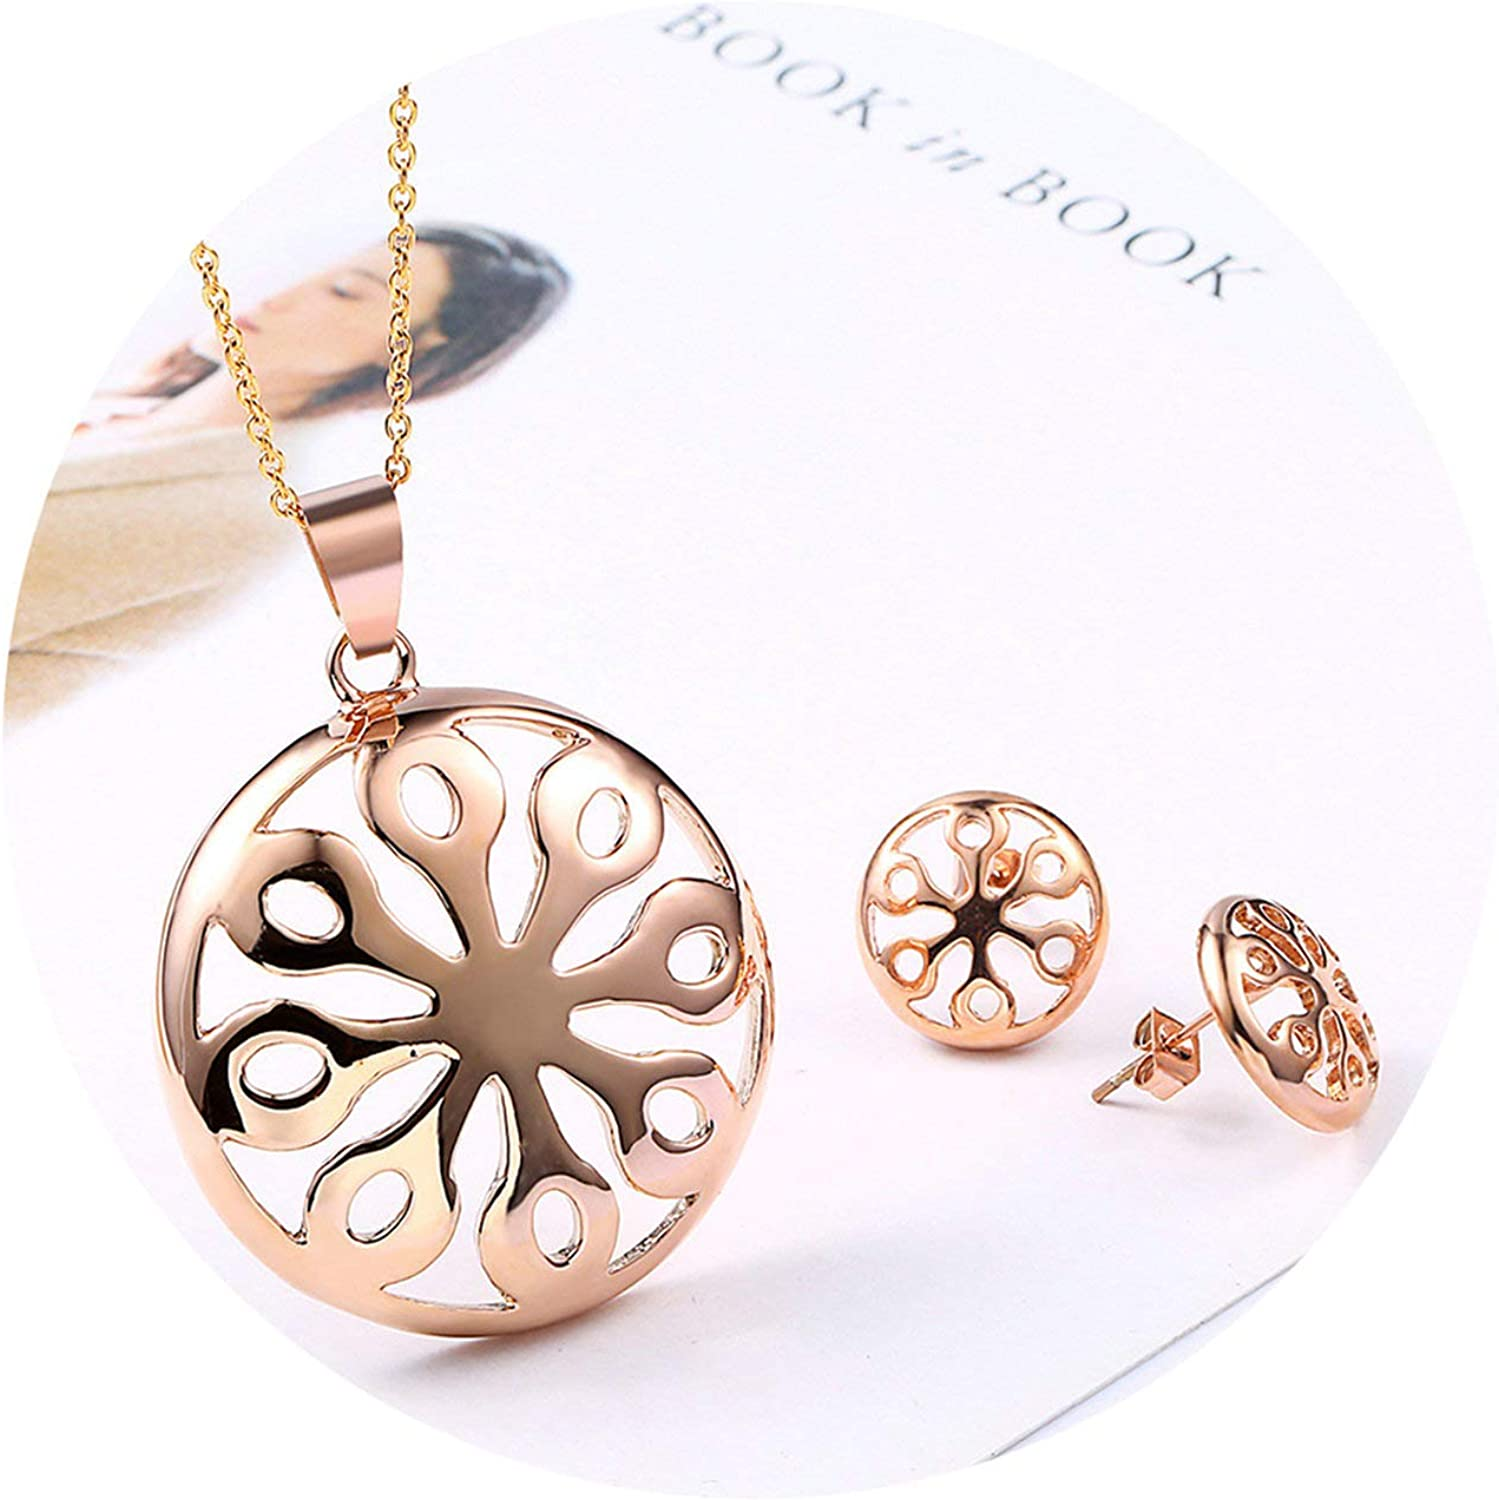 Daesar Stainless Steel Ladies Necklaces and Earrings Set Jewelry for Women Necklace Pendant Noria Women Necklace Earrings Set